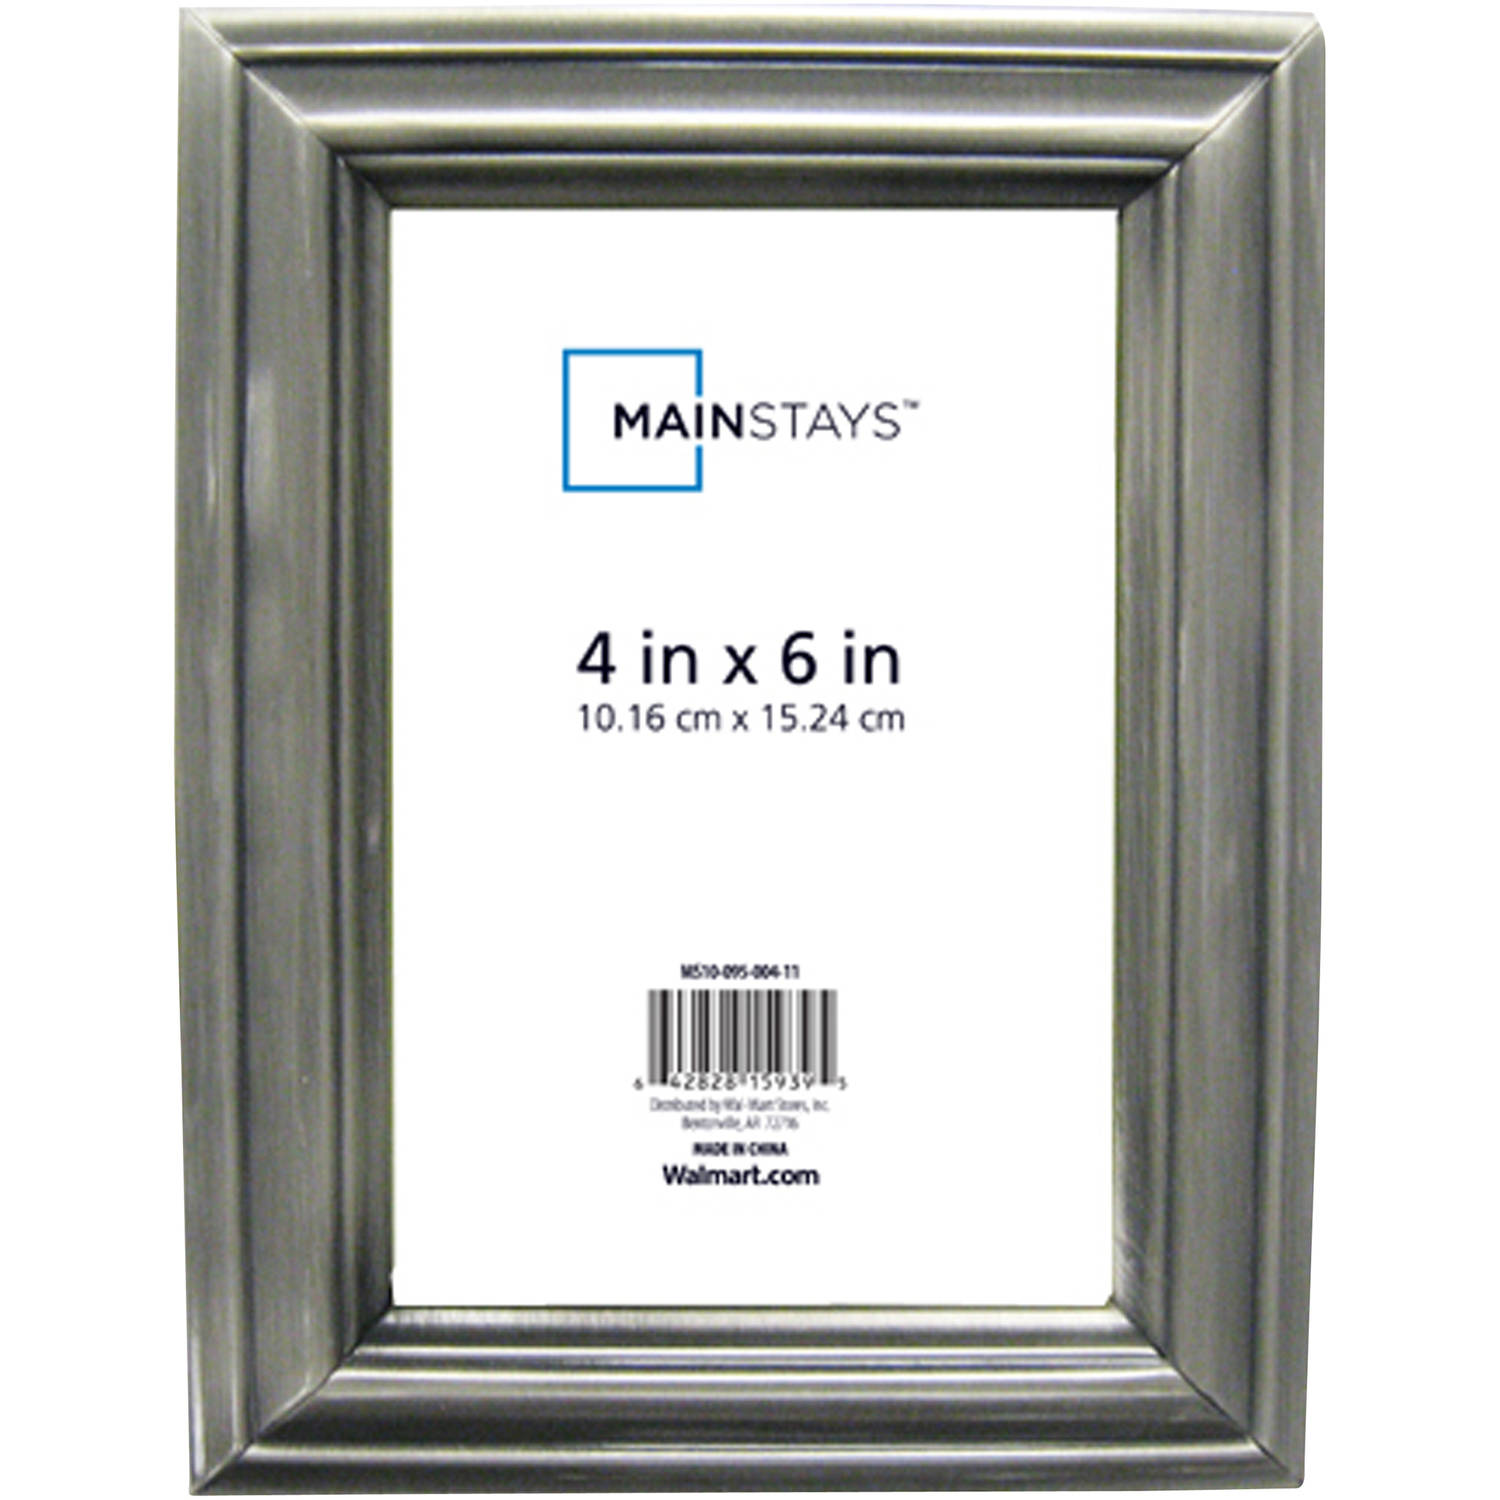 Mainstays picture frame with glass have a front-loading format. Mainstays 8x10 Picture Frames, Set of 6 (2 Pack, Black) by Mainstays.. $ $ 30 FREE Shipping on eligible orders. More Buying Choices. $ (16 new offers) Product Features Mainstays 8x10 Picture Frames, Set of 6.